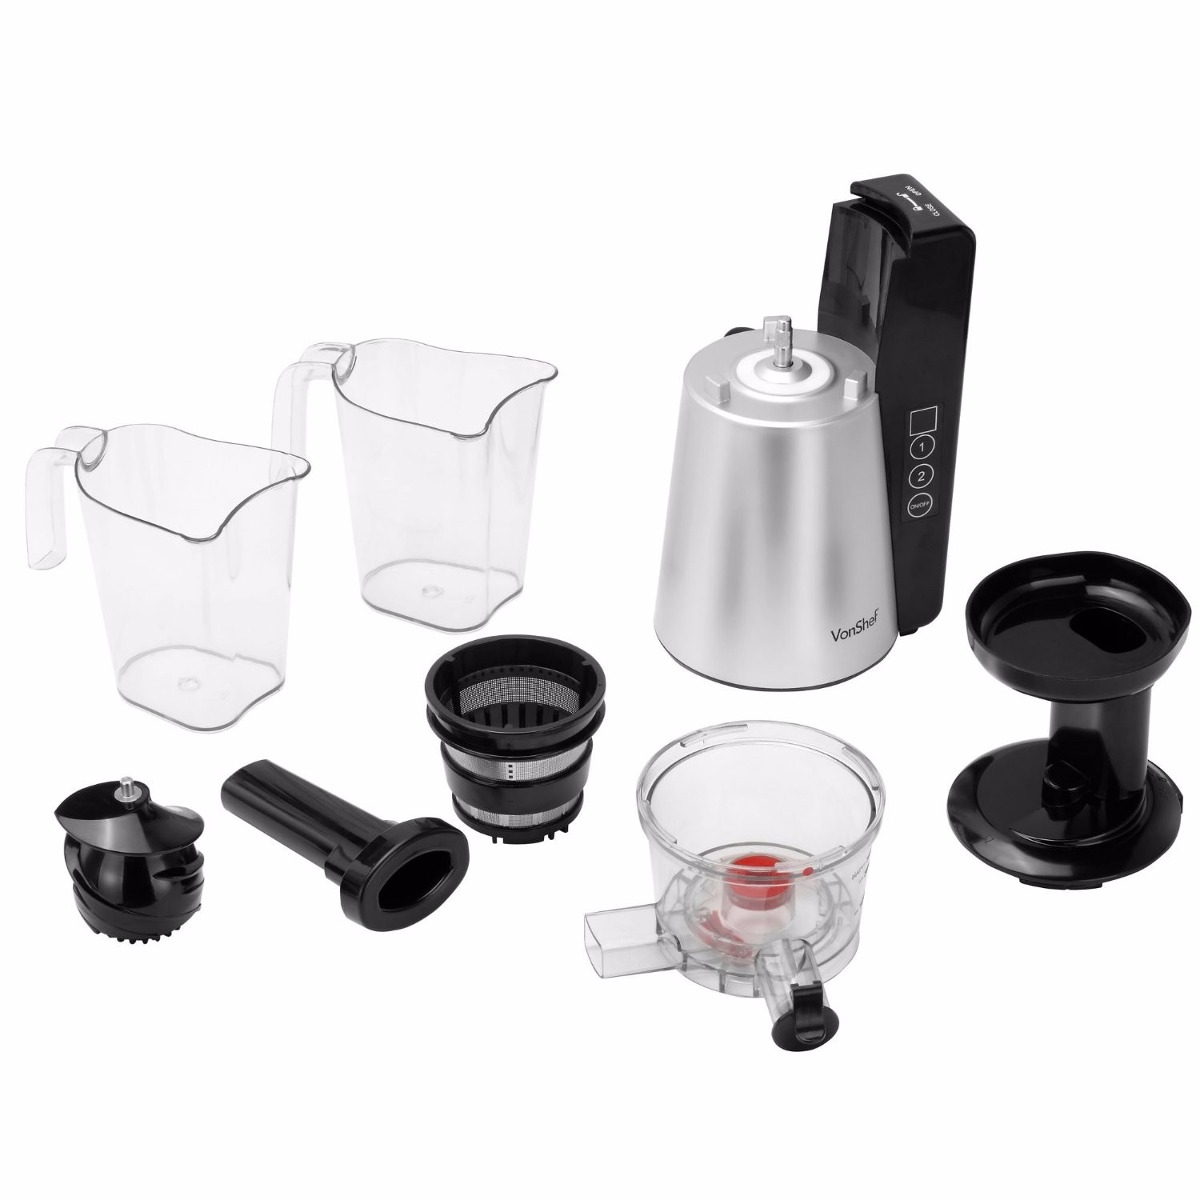 Vonshef 150w Masticating Slow Juicer Manual : vonshef Digital Slow Masticating Juicer With 2 Speeds - $ 4,199.00 en Mercado Libre